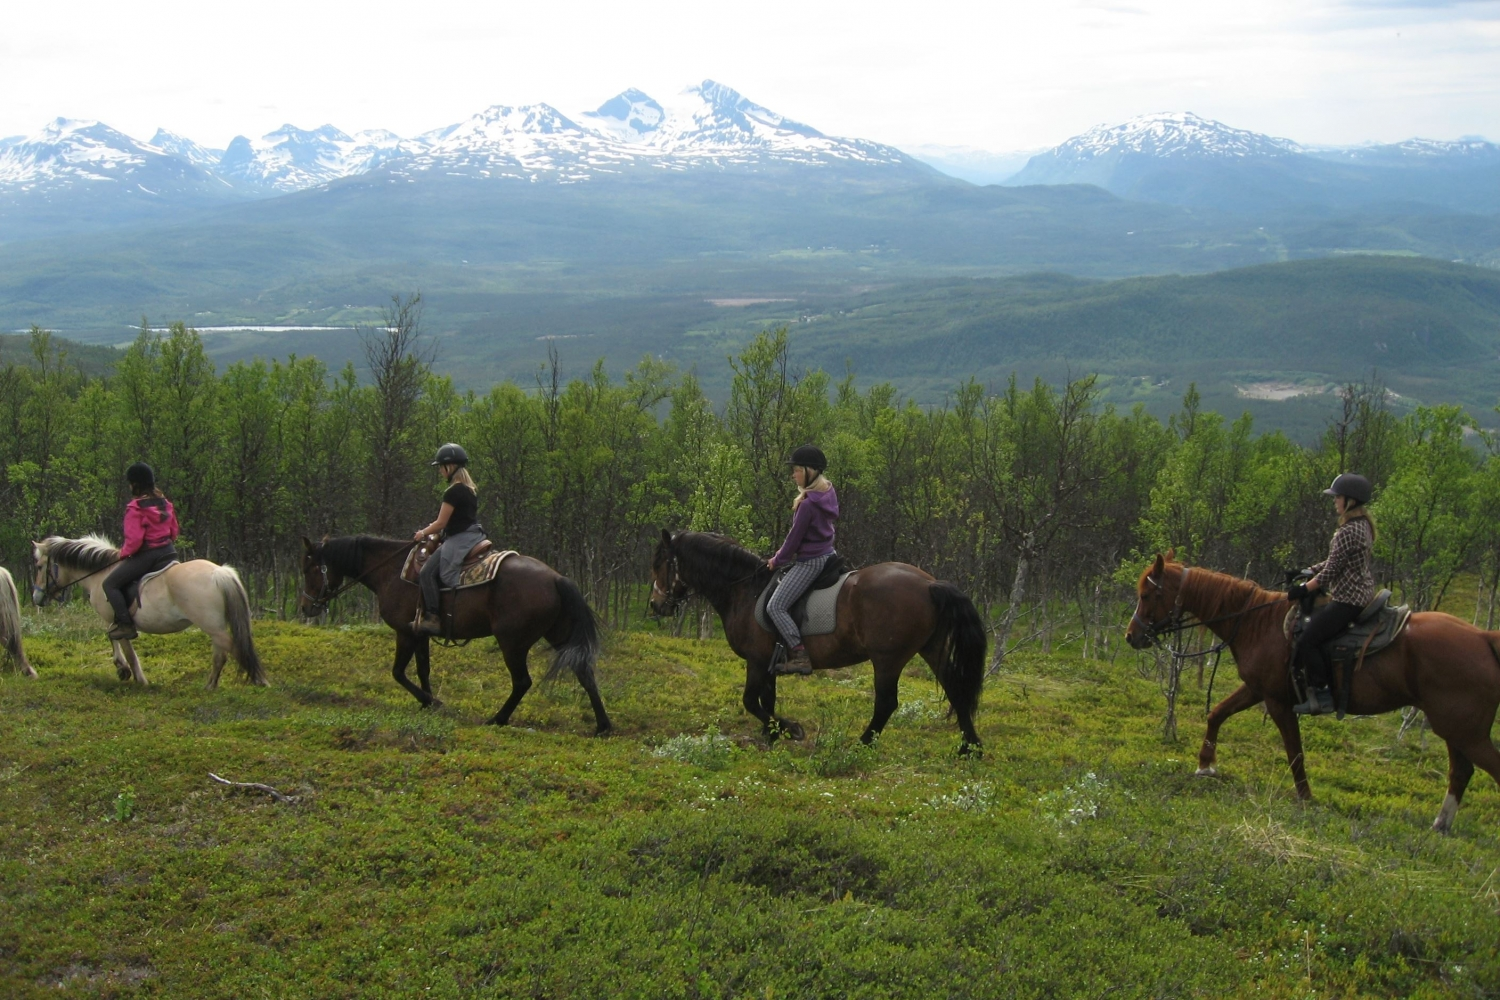 horseback riding in the nature